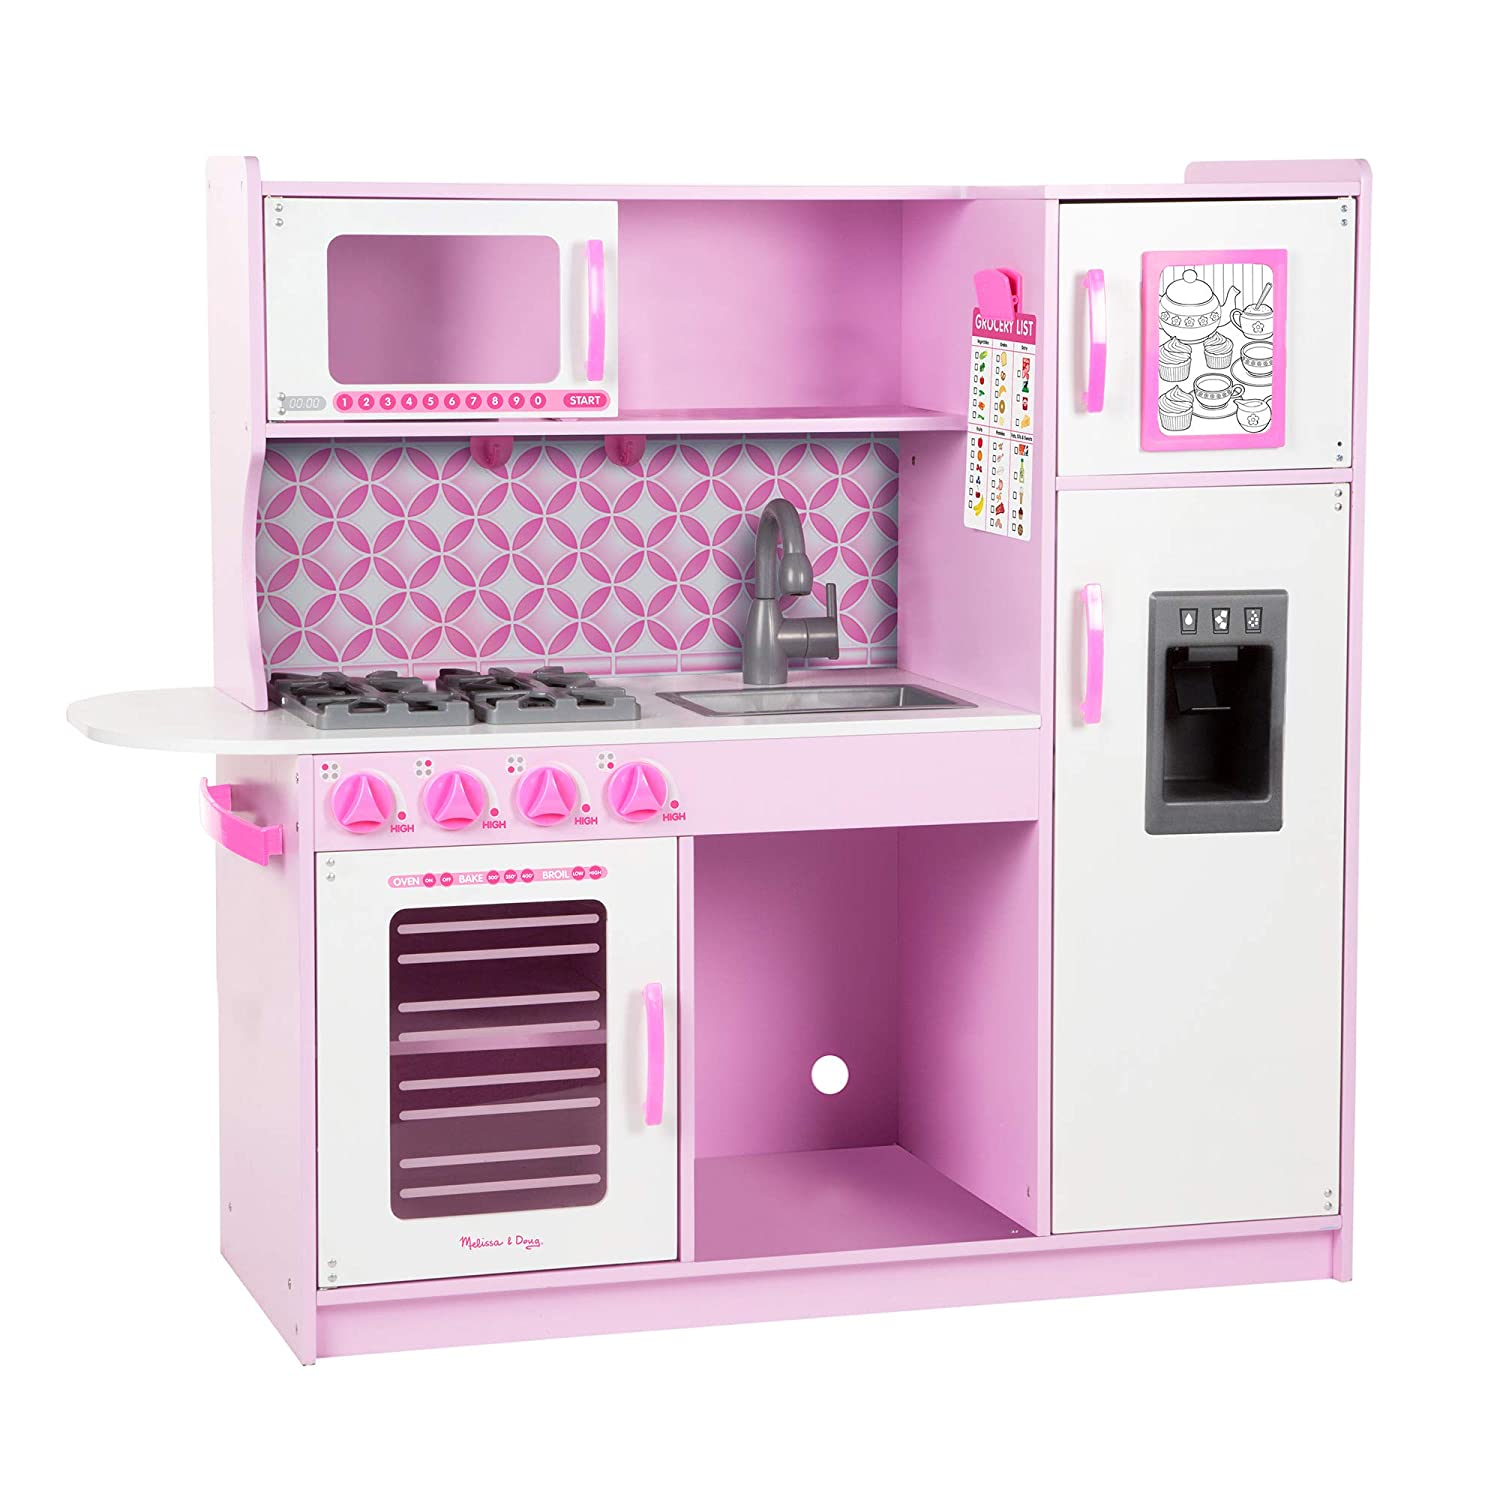 Melissa s kitchen pretend play set cupcake easy to assemble durable wooden construction multiple working parts 39 h x 43 25 w x 15 5 l